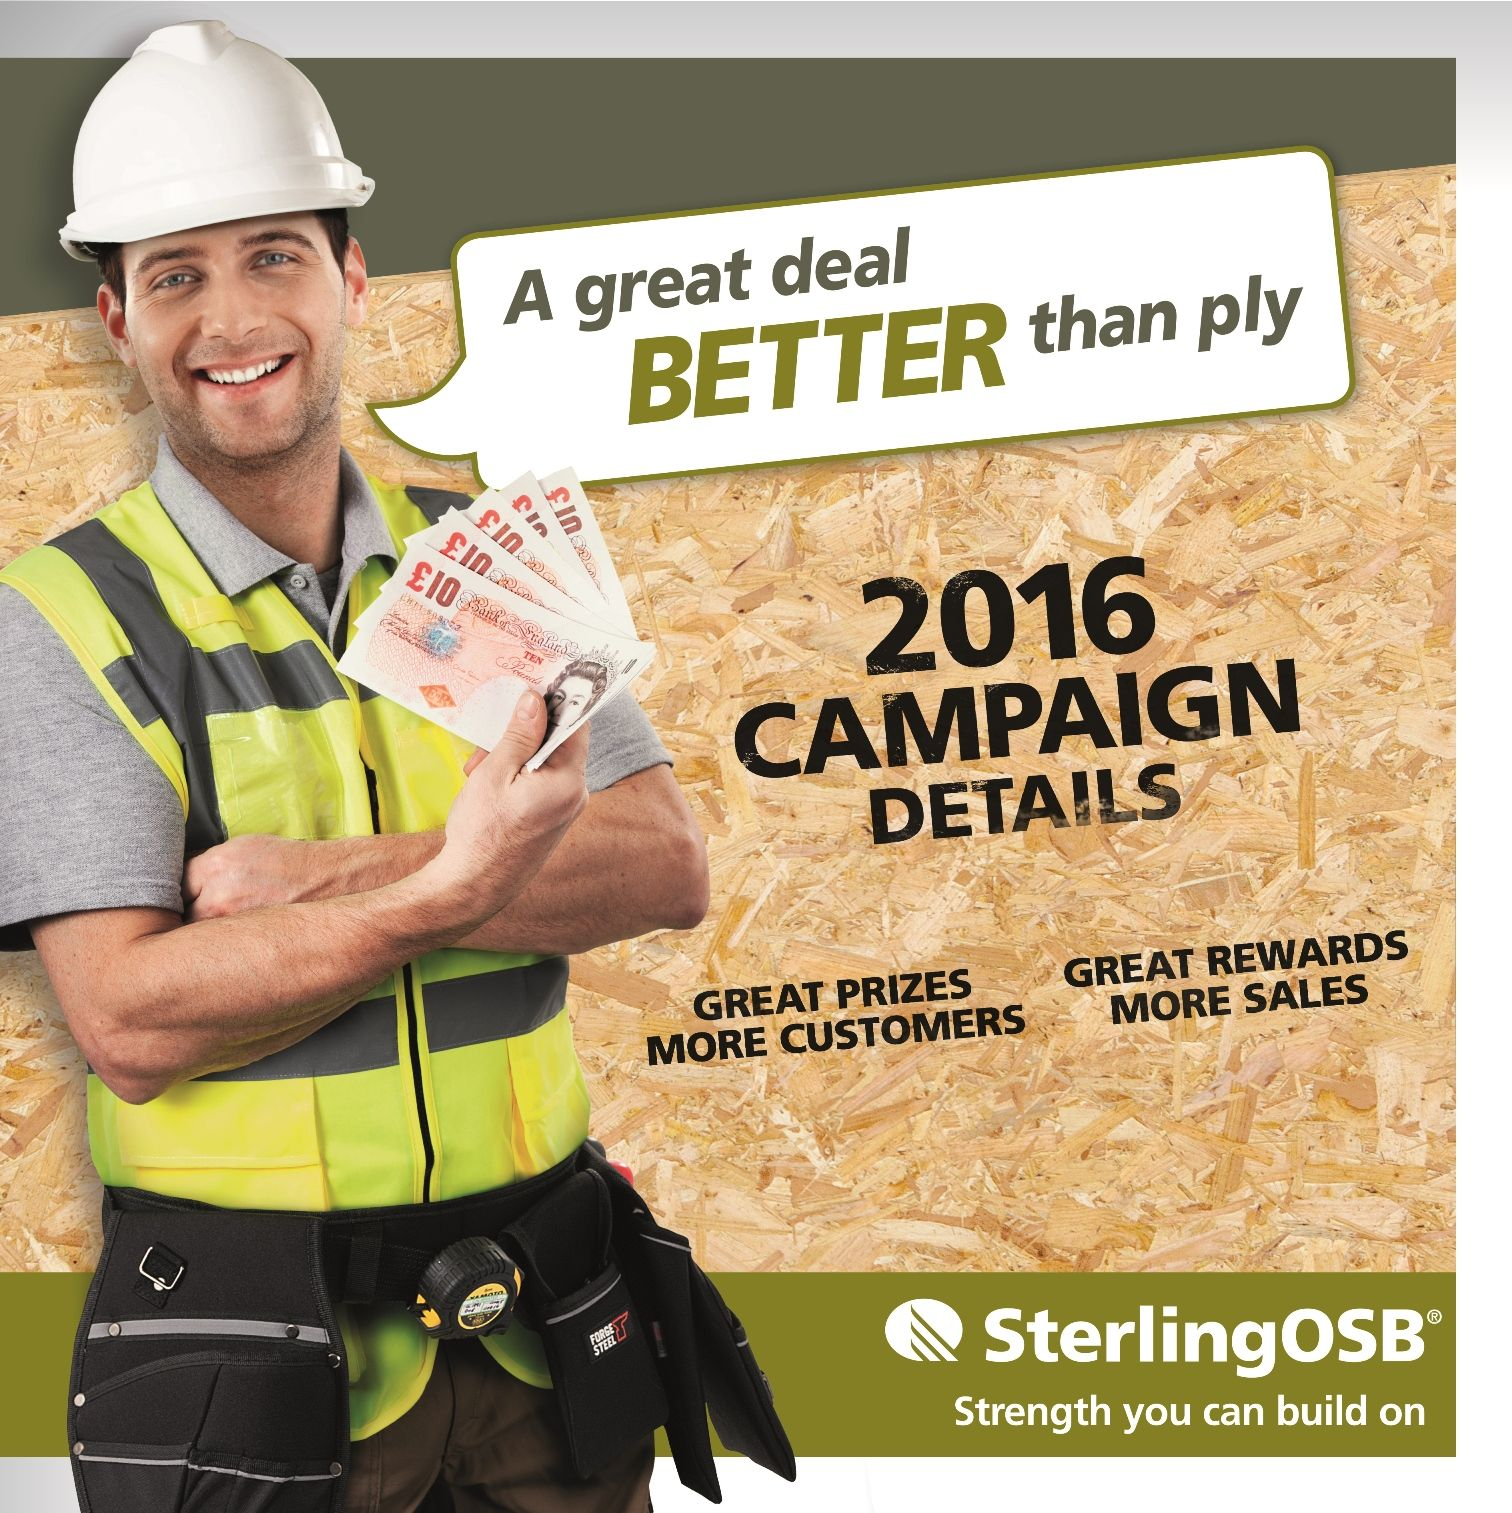 Norbord kicks off 2016 with new nationwide SterlingOSB